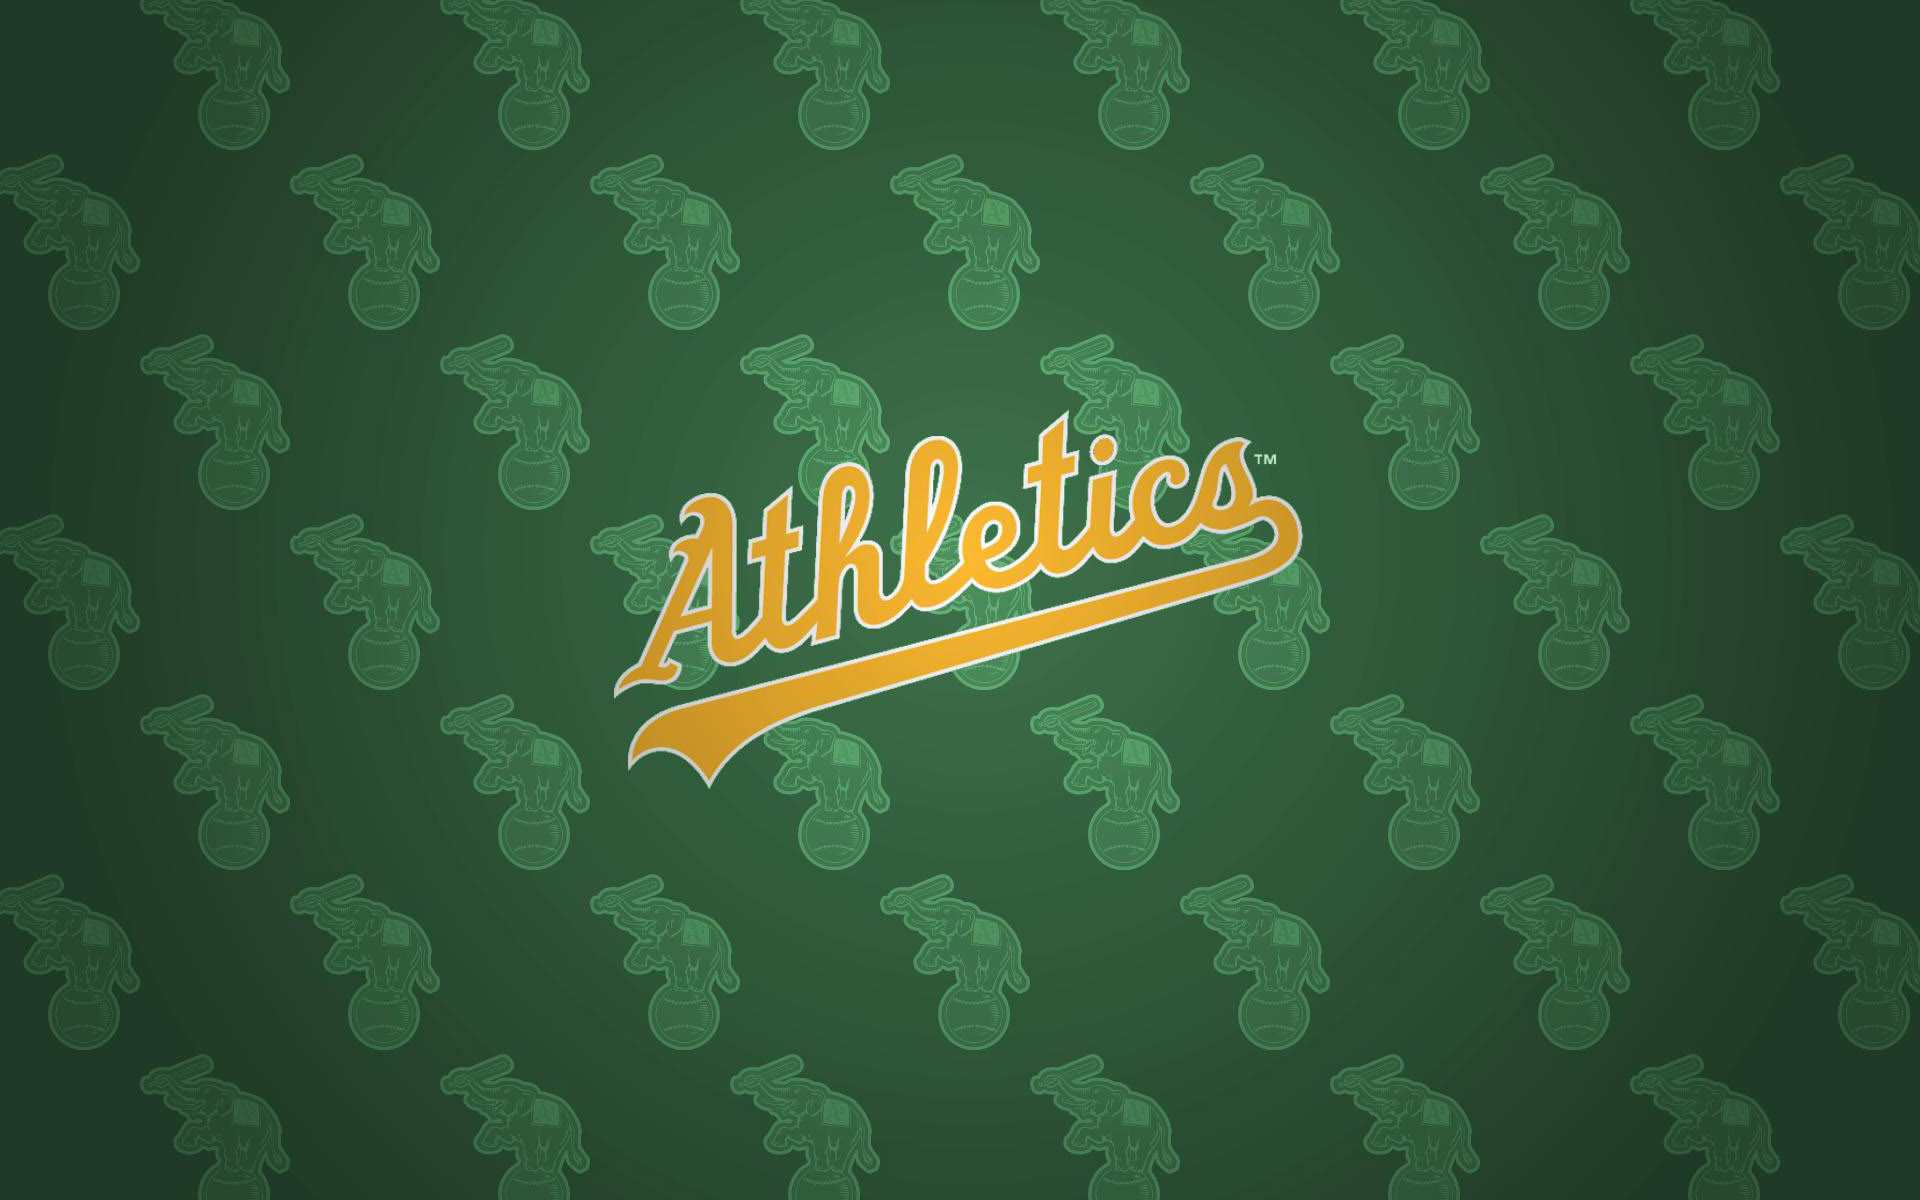 Oakland Athletics Wallpaper 7   1920 X 1200 stmednet 1920x1200